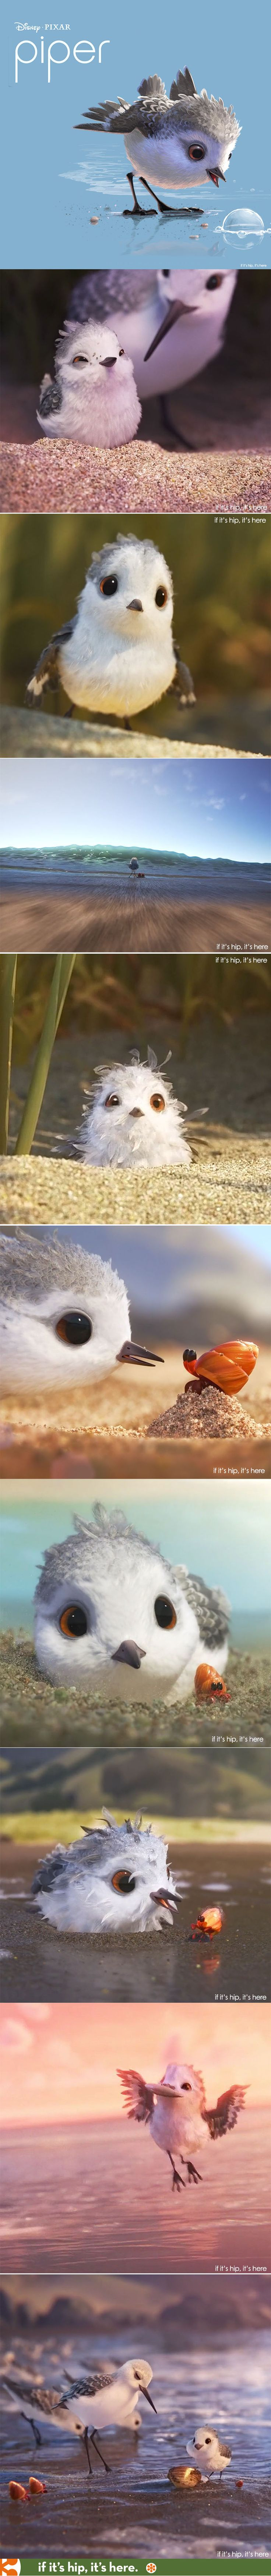 Pixar's Piper is 6 minutes of adorable. See the film in its entirety at the link.